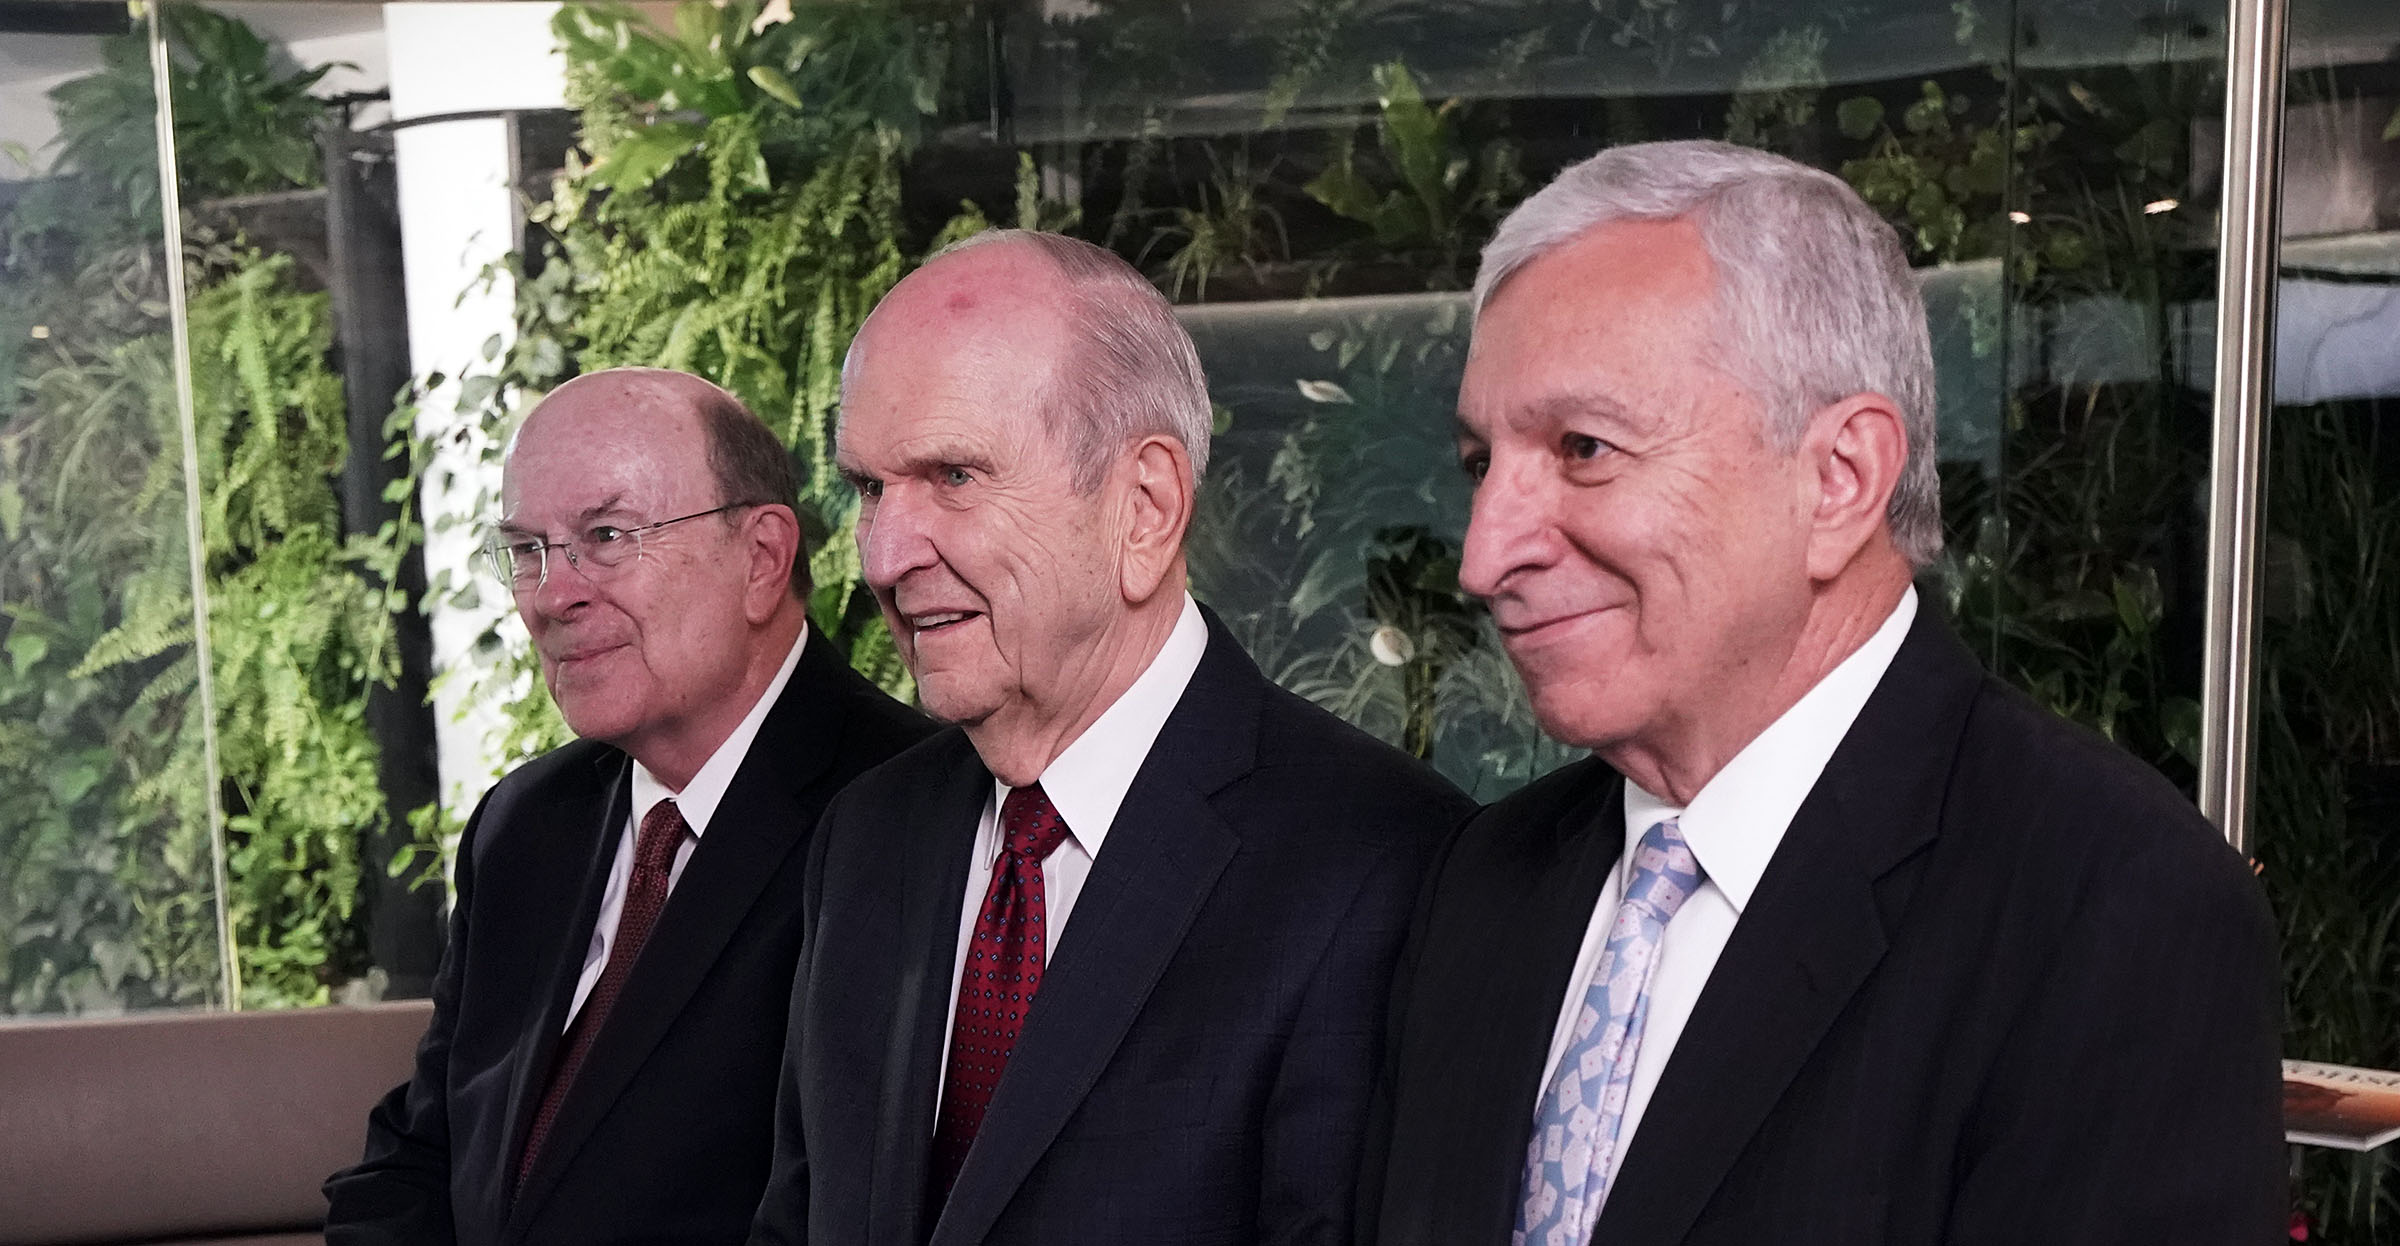 President Russell M. Nelson of The Church of Jesus Christ of Latter-day Saints, center, answers a question during an interview in Bogota, Colombia, on Monday, Aug. 26, 2019. At left is Elder Quentin L. Cook of the Quorum of the Twelve Apostles. At right is Elder Enrique R. Falabella, a General Authority Seventy. They previously met with President Ivan Duque of Colombia.